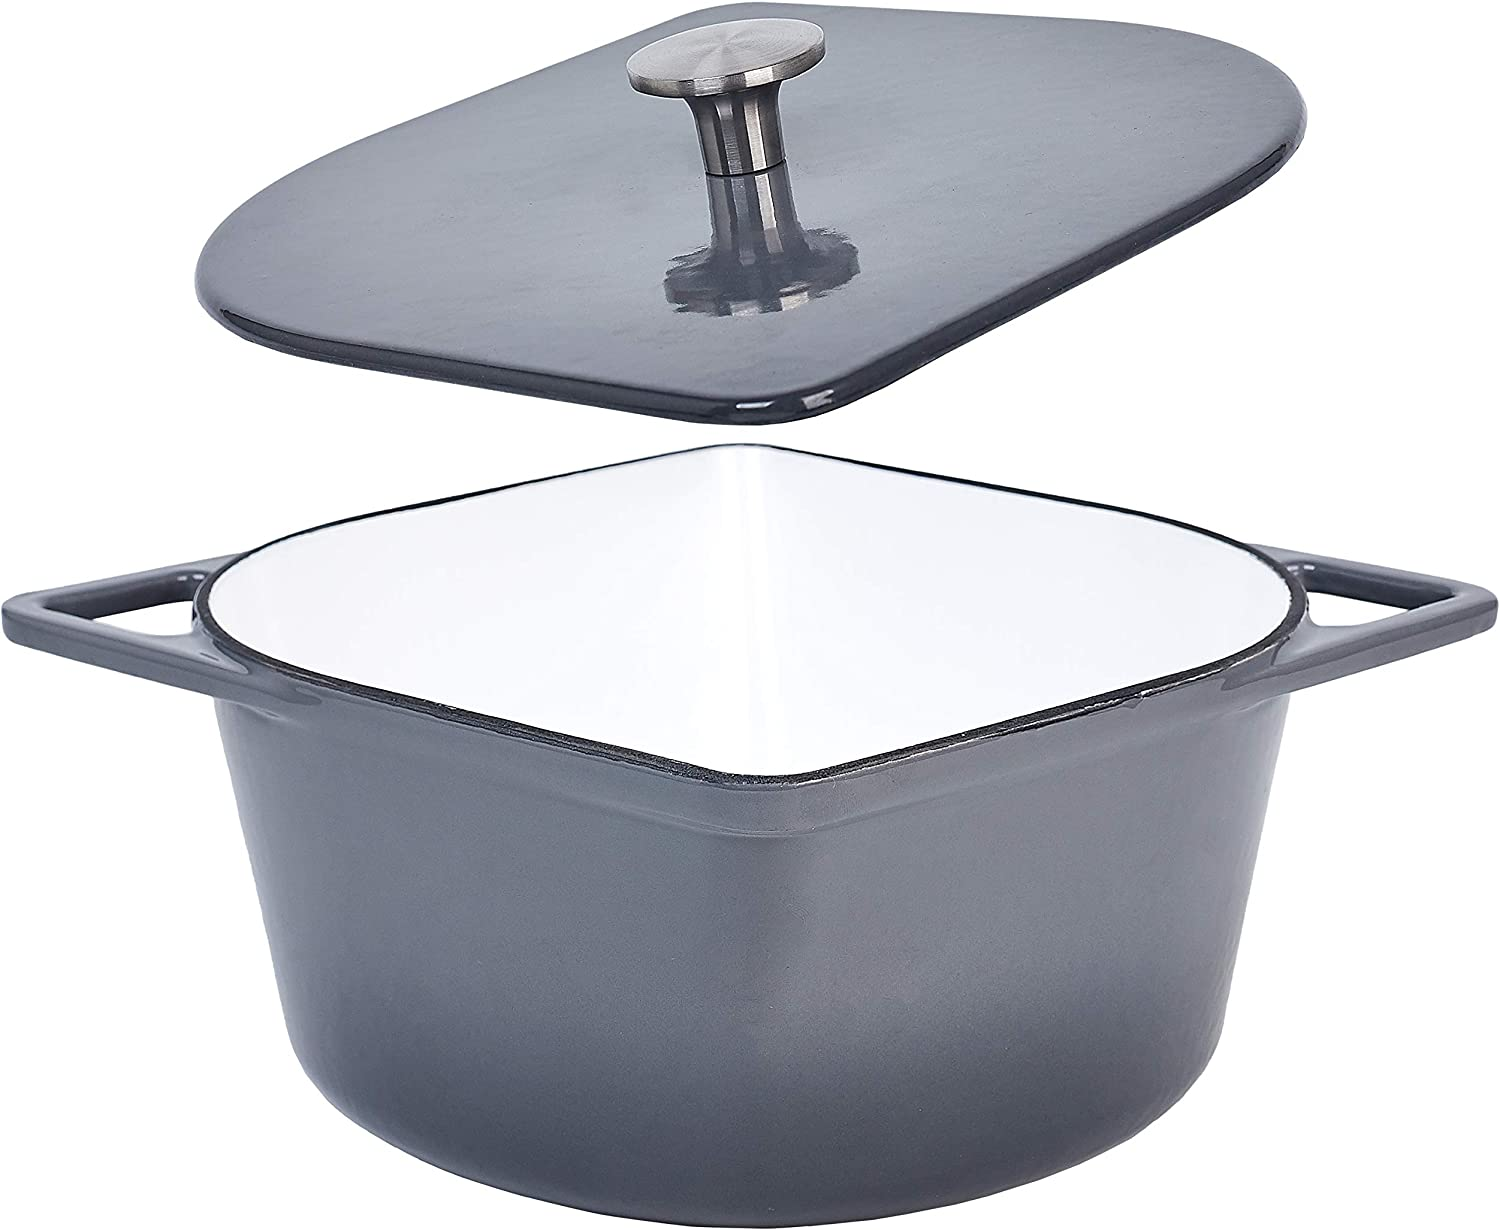 3 Quart Cast Iron Enameled Dutch Oven Modern Squoval Shaped Design, with Stainless Steel Knob, Grey